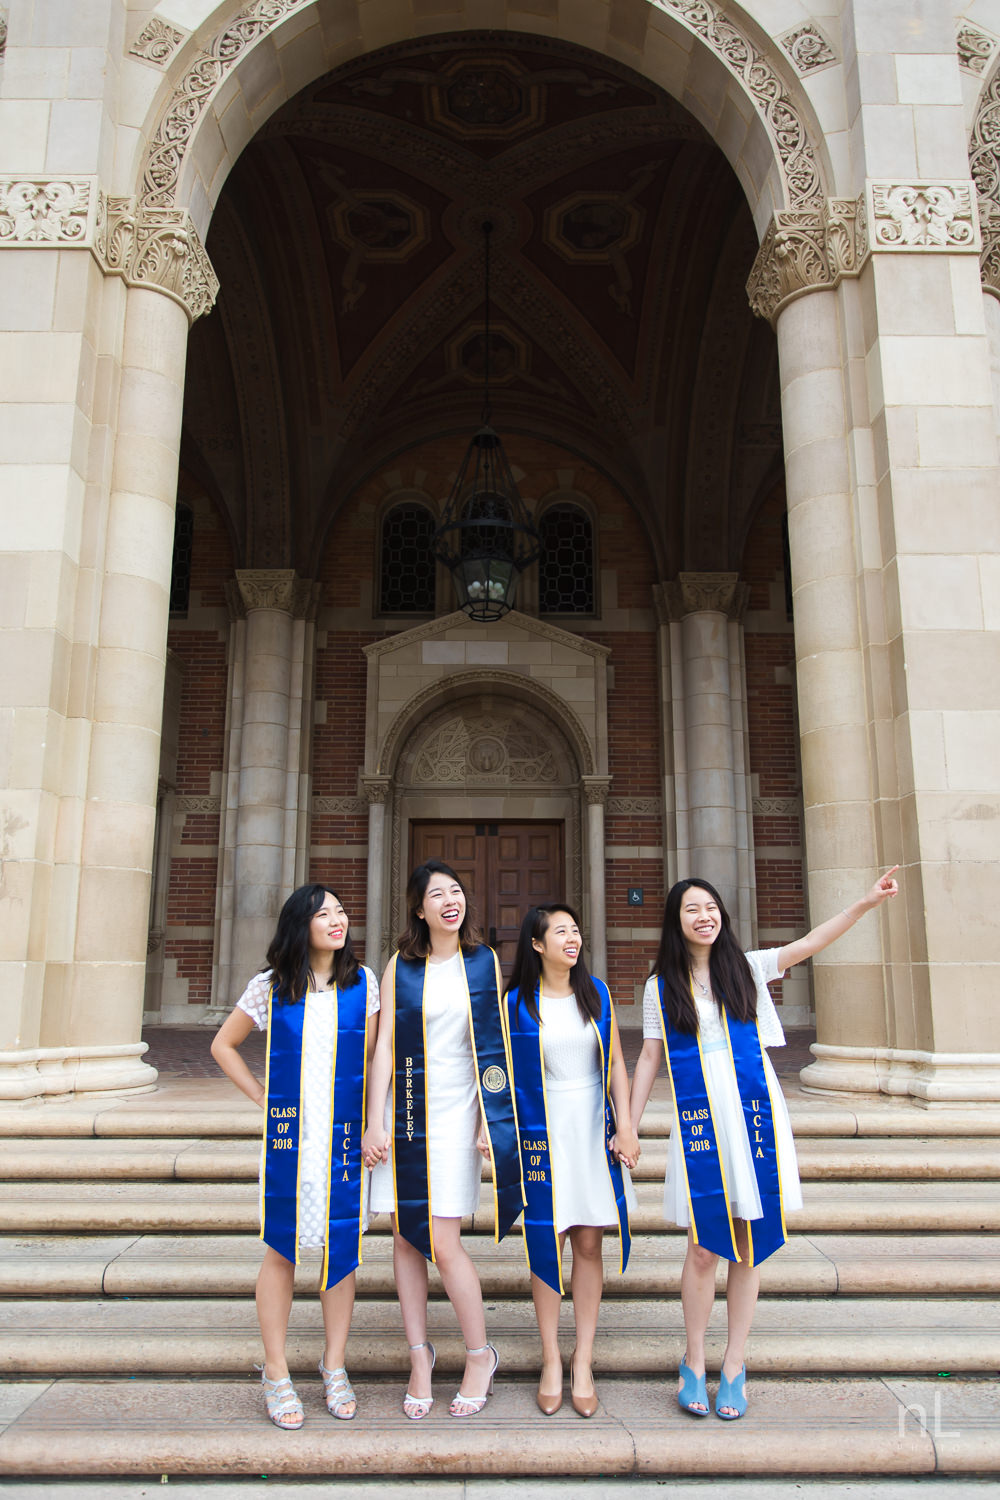 los-angeles-ucla-senior-graduation-portraits-0407.jpg